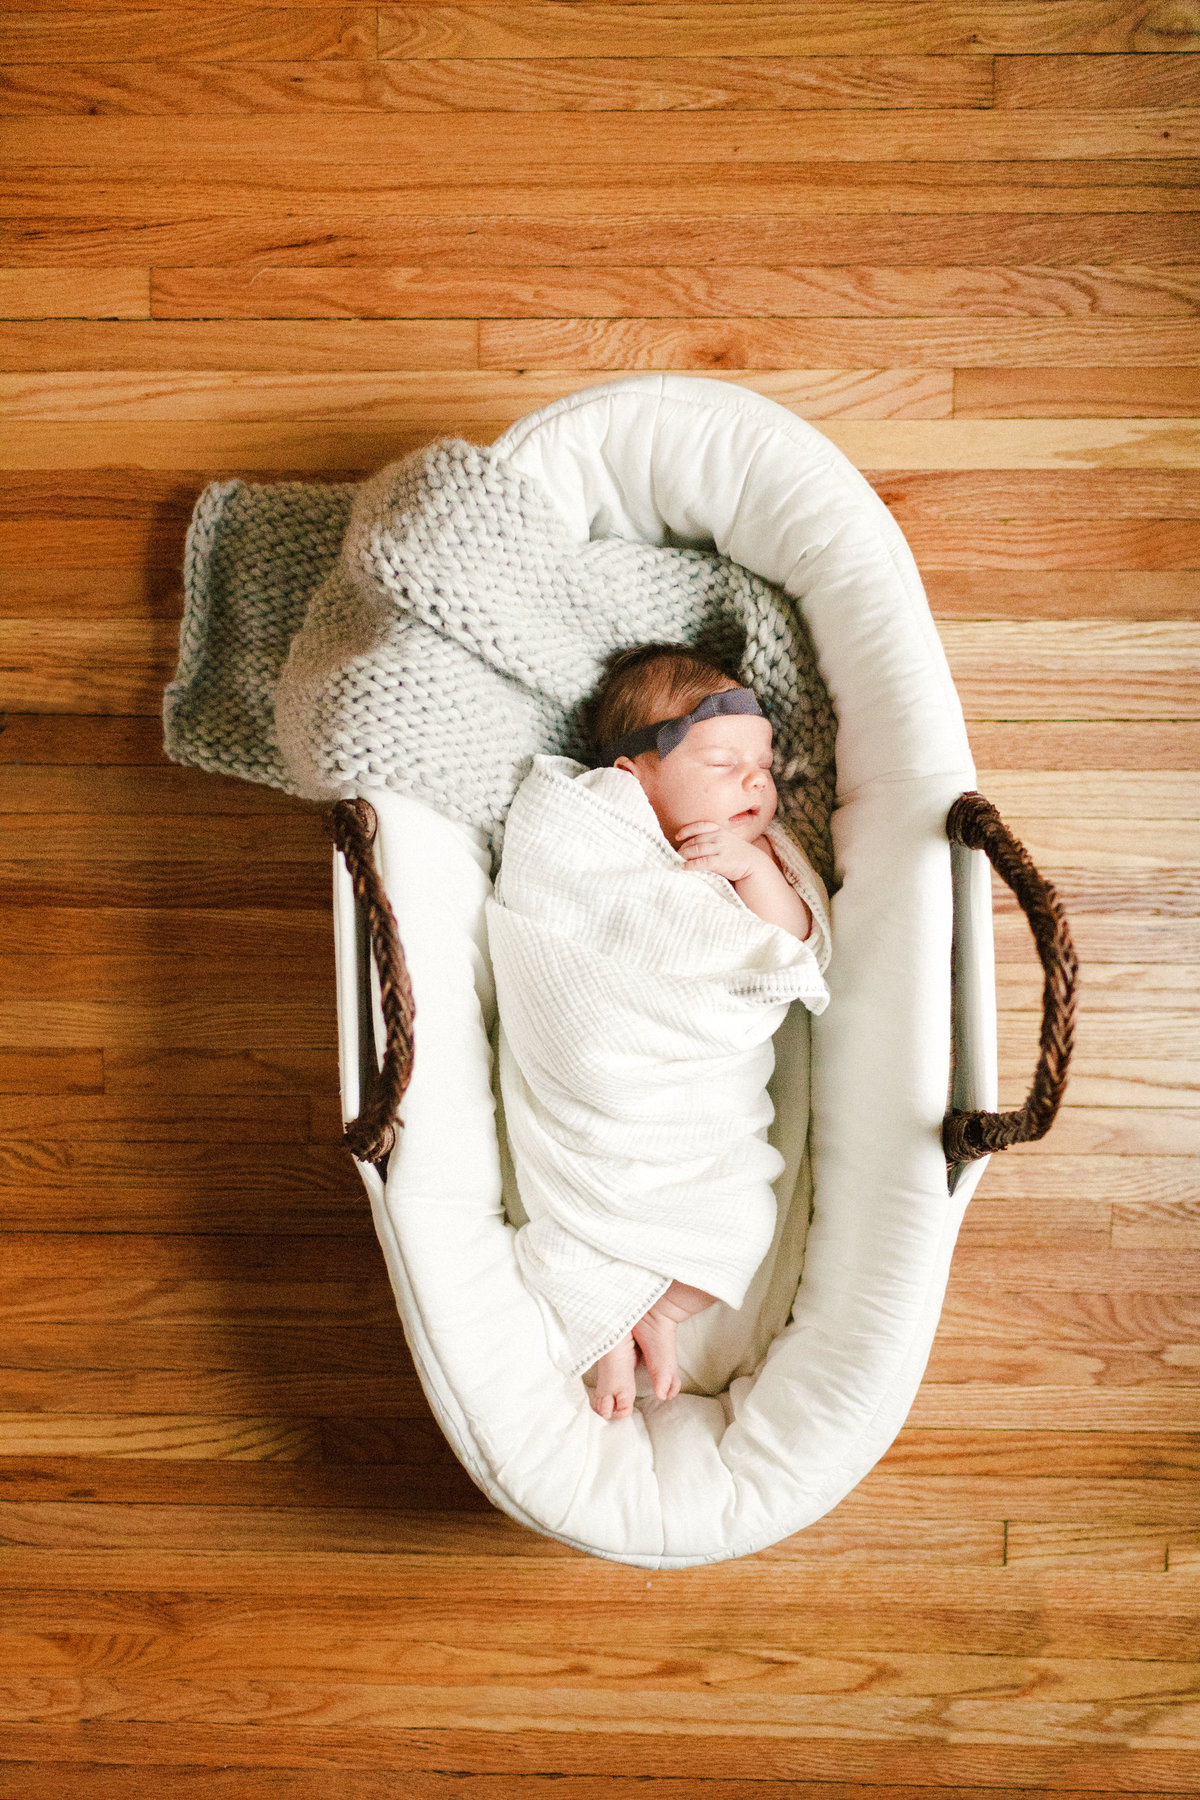 sleeping baby girl in a basket on wood floors for lifestyle newborn photography twin cities minnesota